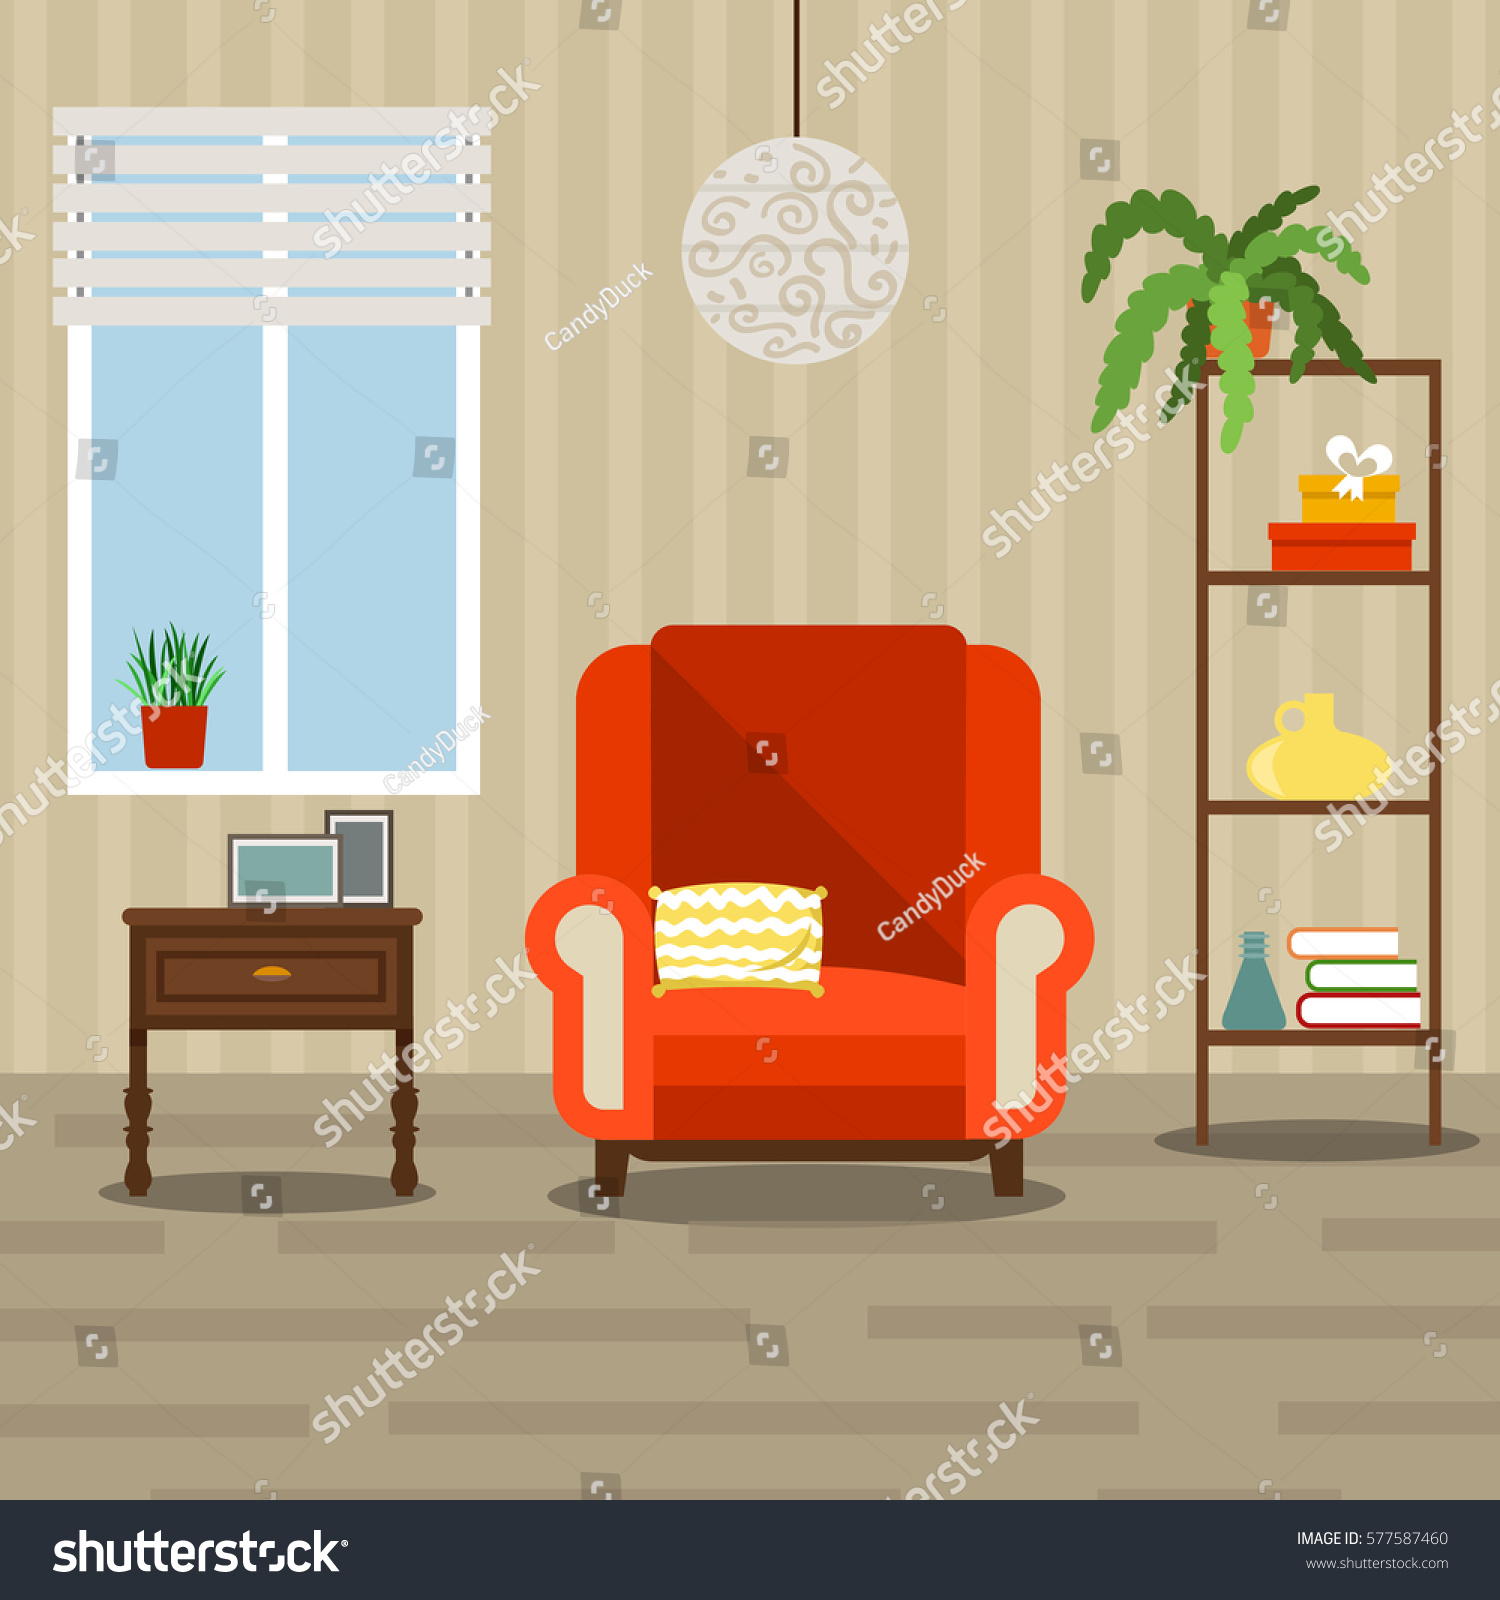 Interior Of Modern Living Room In Flat Design Stock Vector: Vector Image Illustration Room Living Room Stock Vector